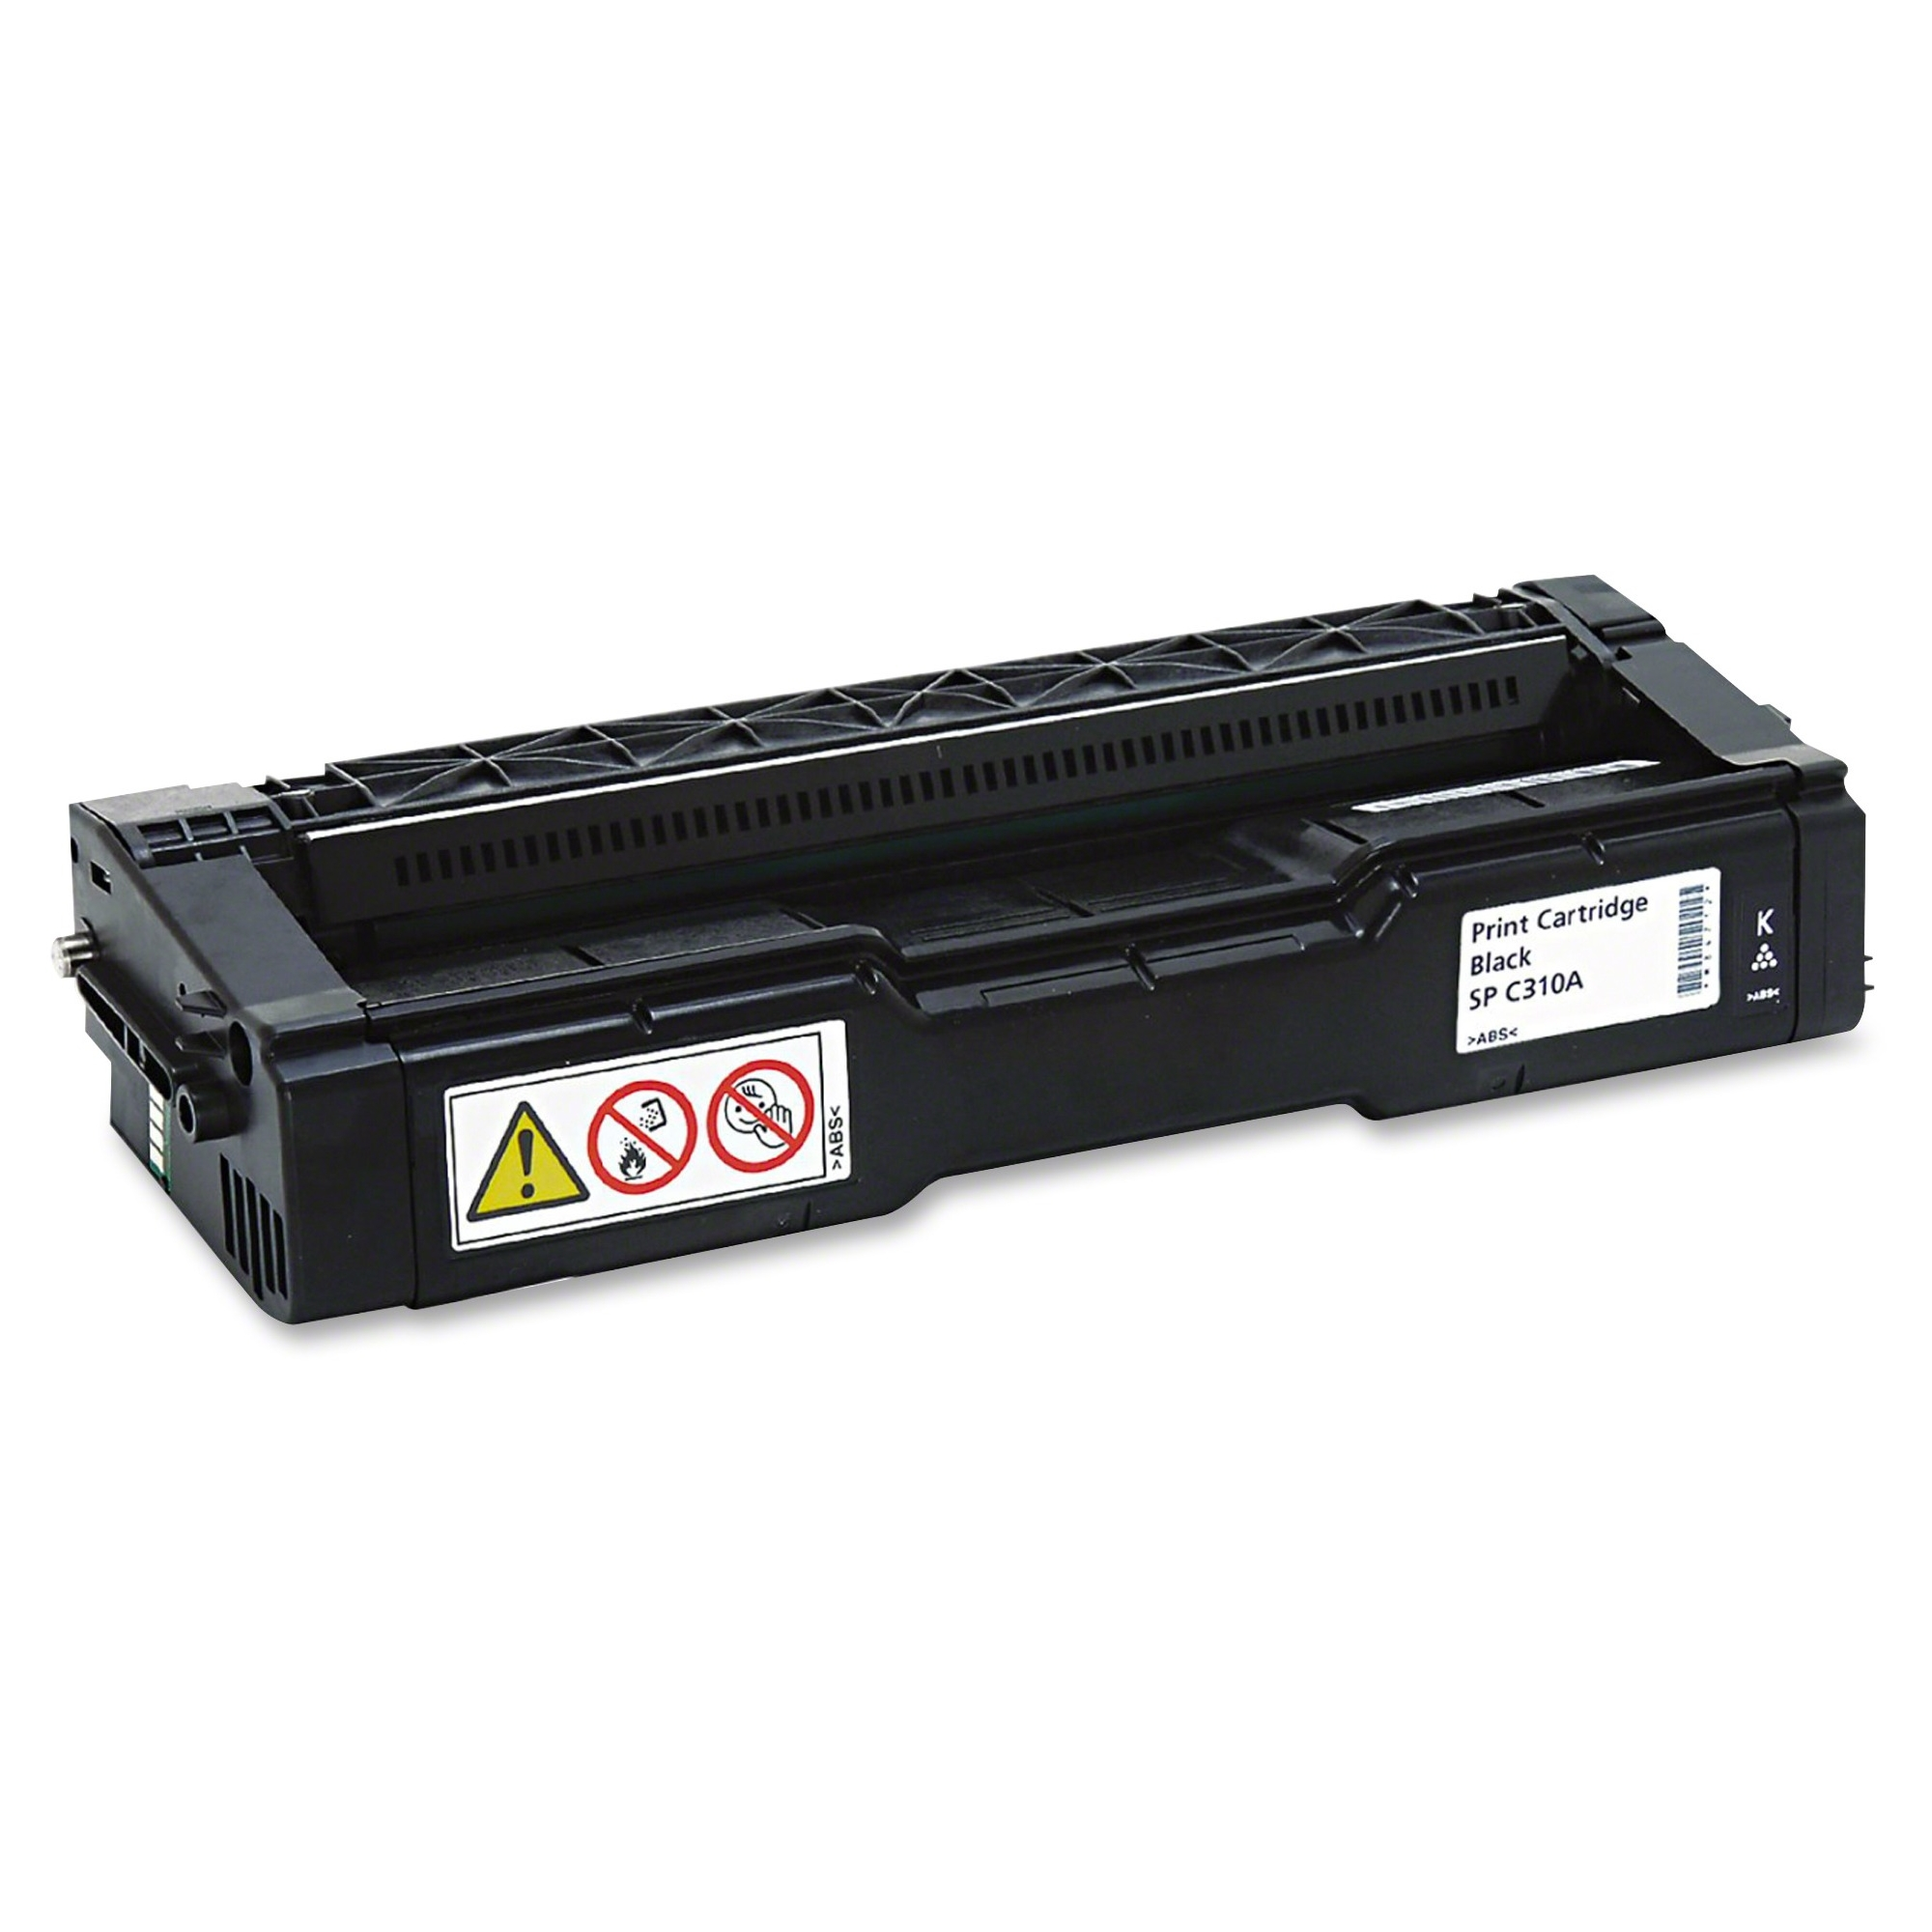 Type SP C310A - Black - original - toner cartridge - for Ricoh SP C231 SP C232 SP C240 SP C242 SP C311 SP C312 SP C320 SP C340 SP C342